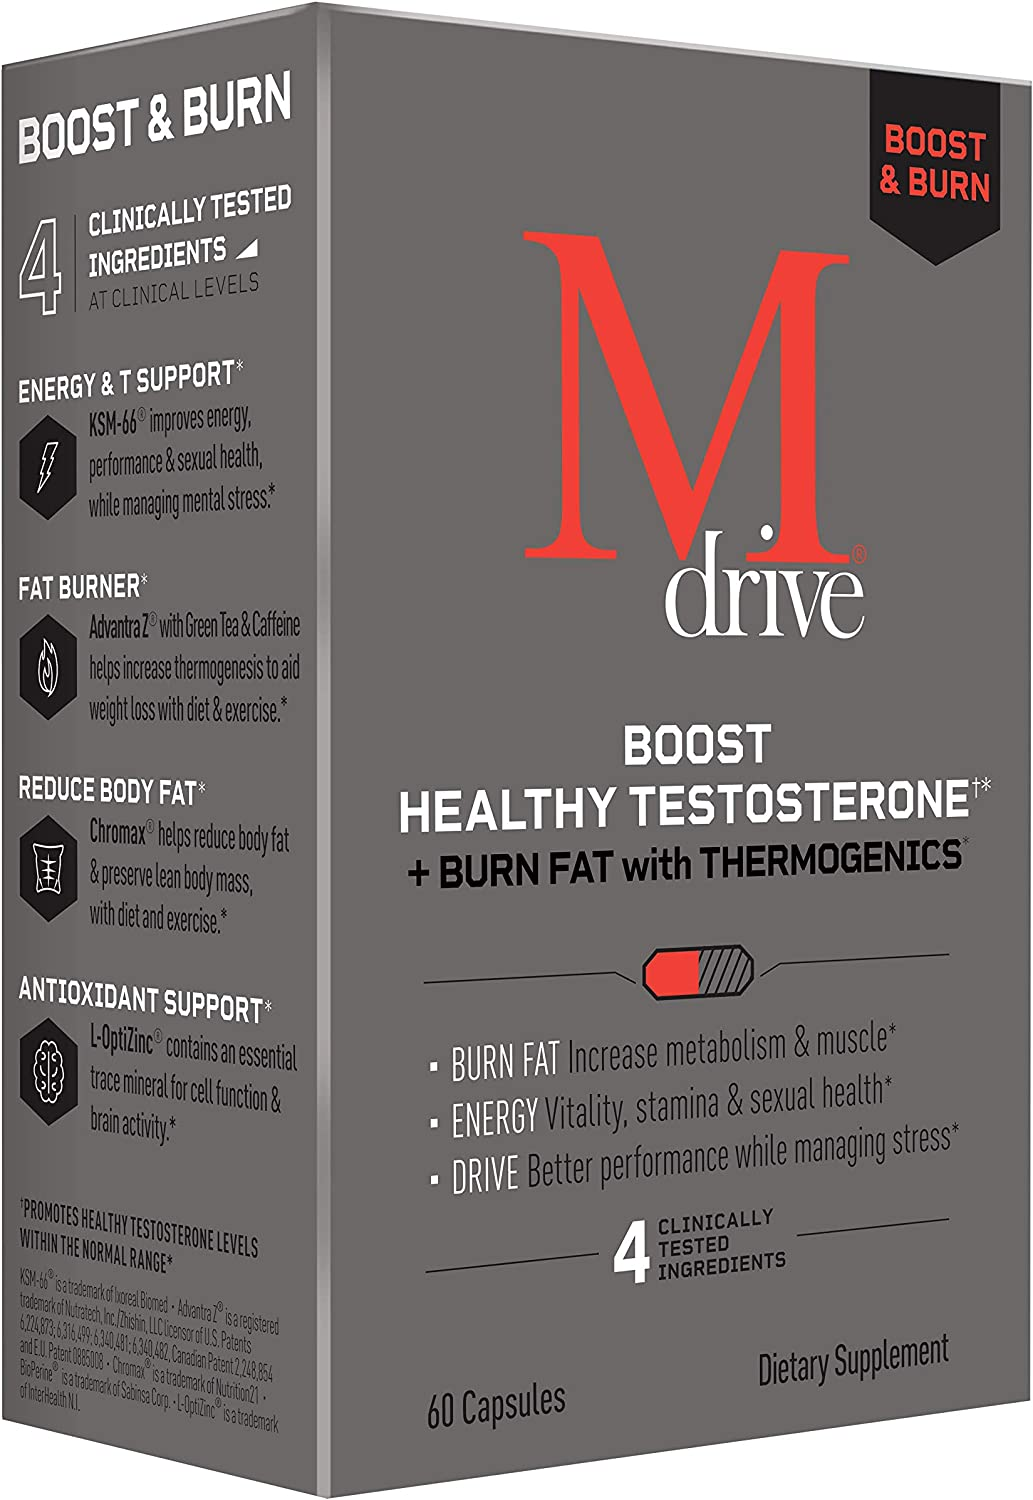 Mdrive Boost and Burn Testosterone Booster and Fat Burner for Men, Natural Energy, Strength, Stress Relief, Lean Muscle with Zinc, KSM-66 Ashwagandha, Cordyceps, Advantra Z, Chromax, 60 Capsules